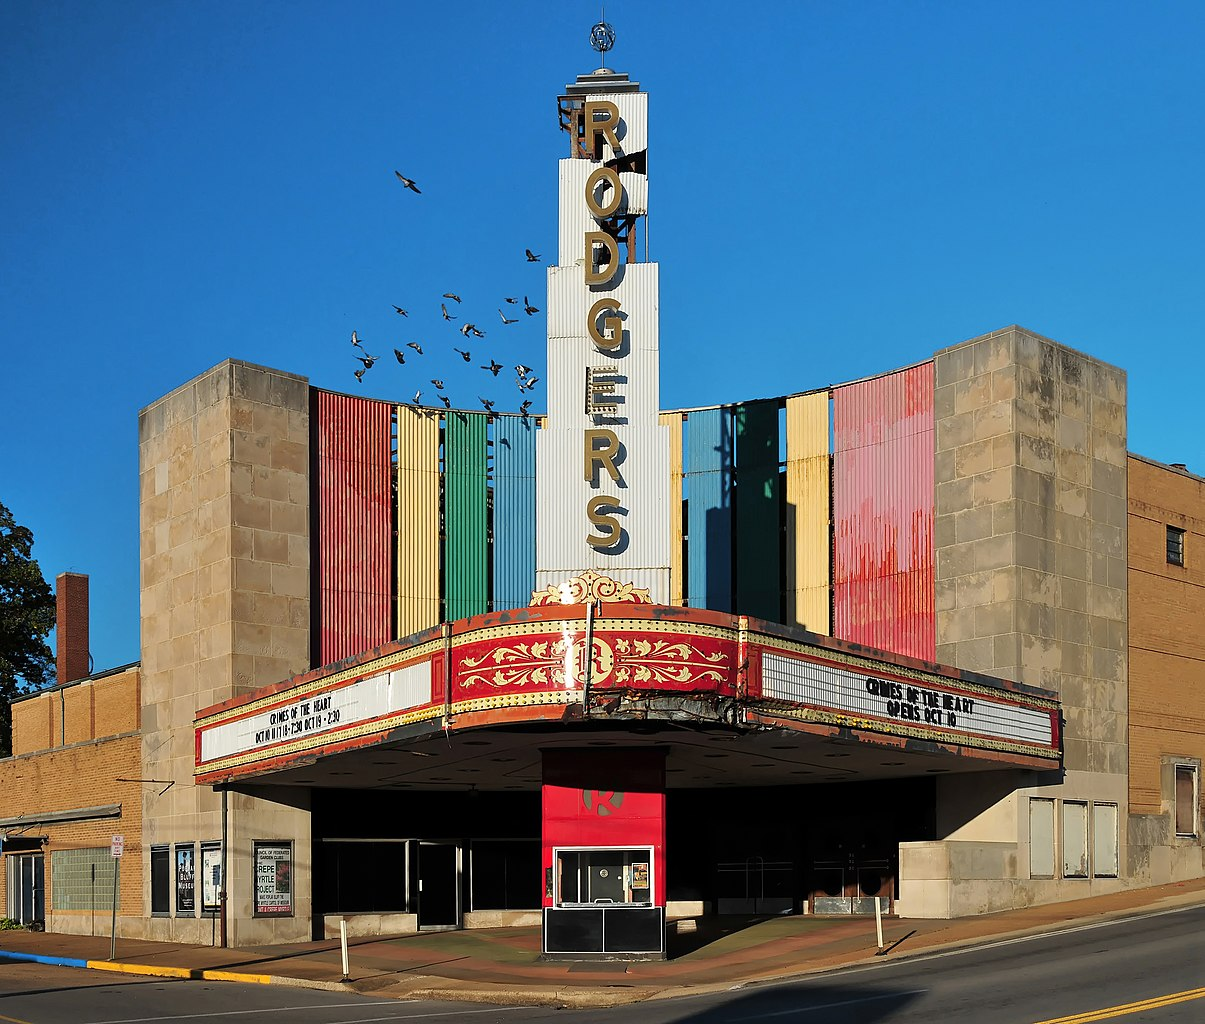 Amc Poplar Bluff >> File:Rodgers Theatre, 204-224 N. Broadway Street, Poplar Bluff, Mo, USA.jpg - Wikimedia Commons